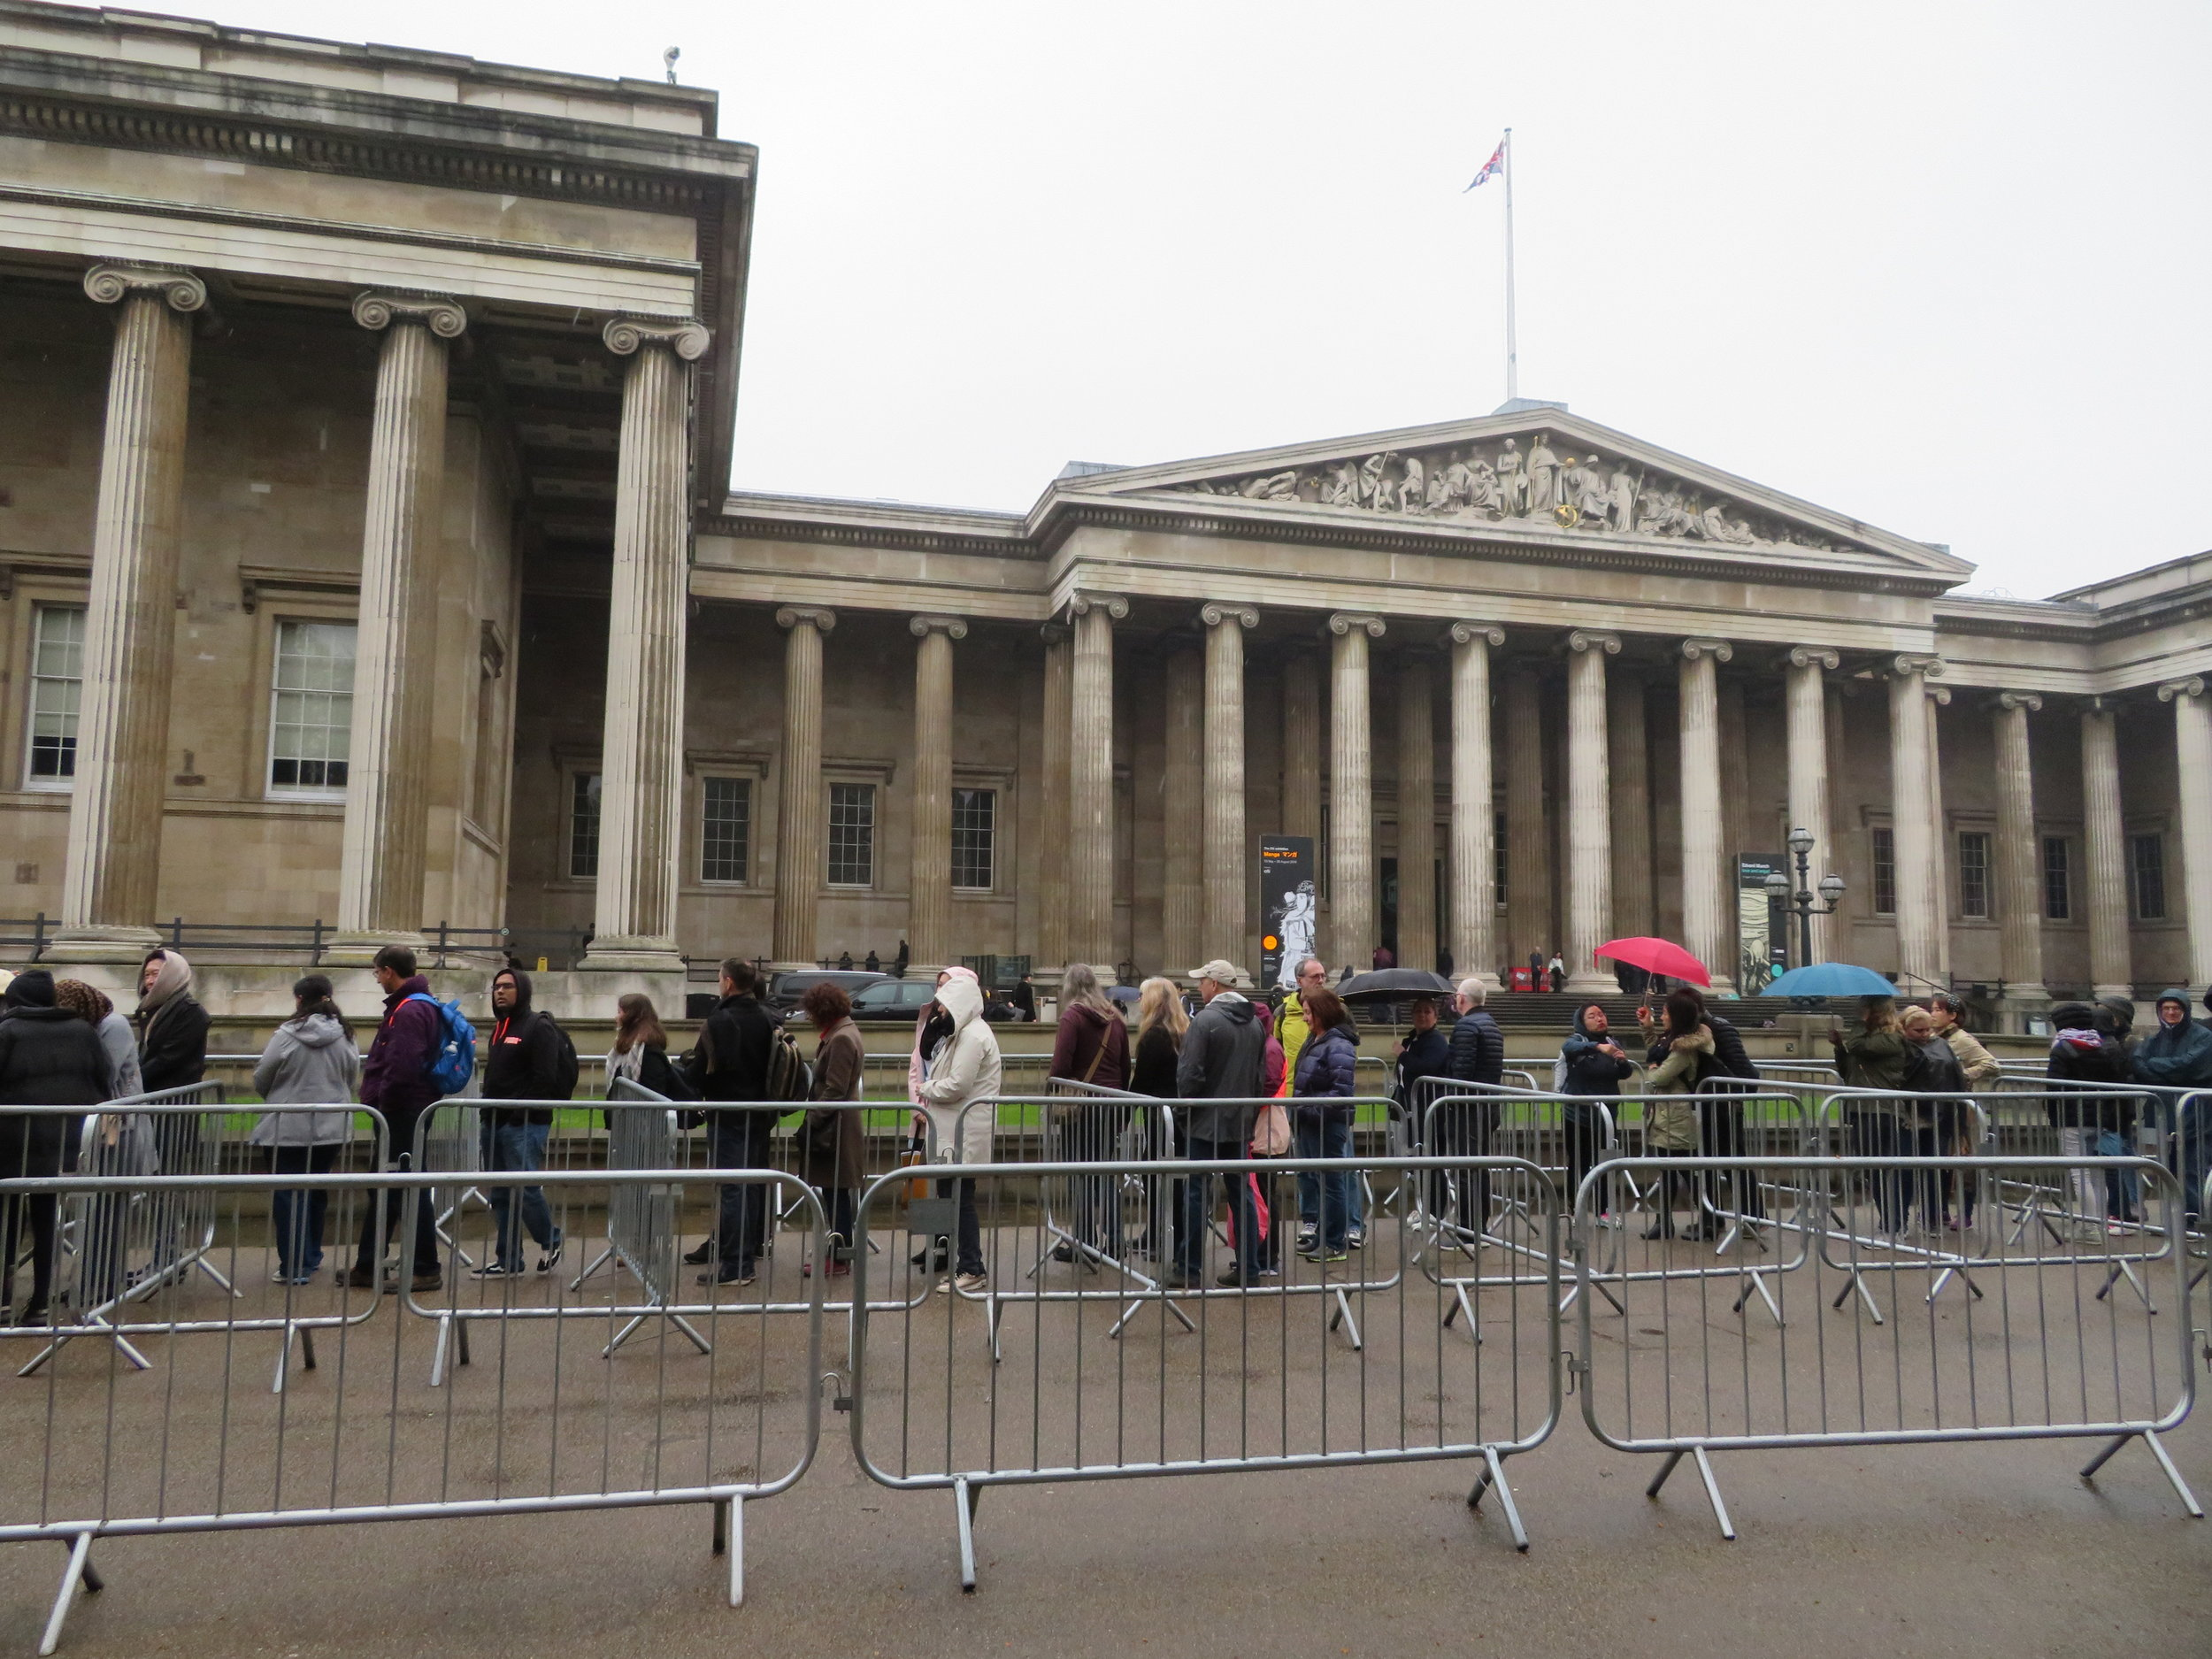 A very, very long queue at the British Museum. If we lived here, we'd be members.